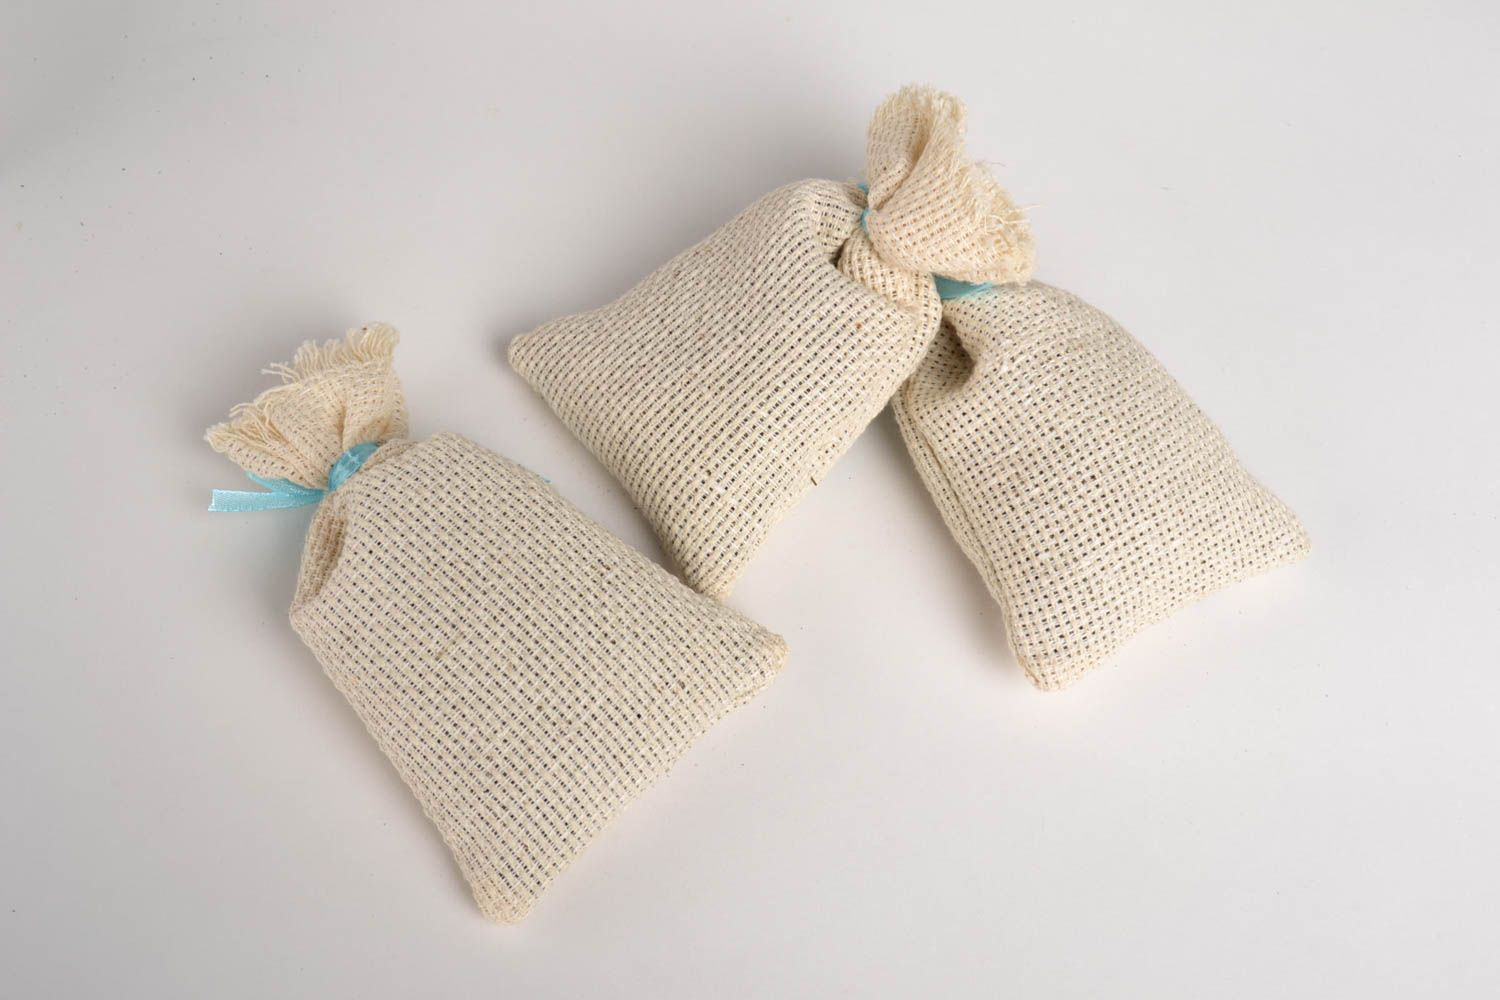 Sachet pillows handmade lavender sachets aroma therapy homemade gifts for friend photo 4